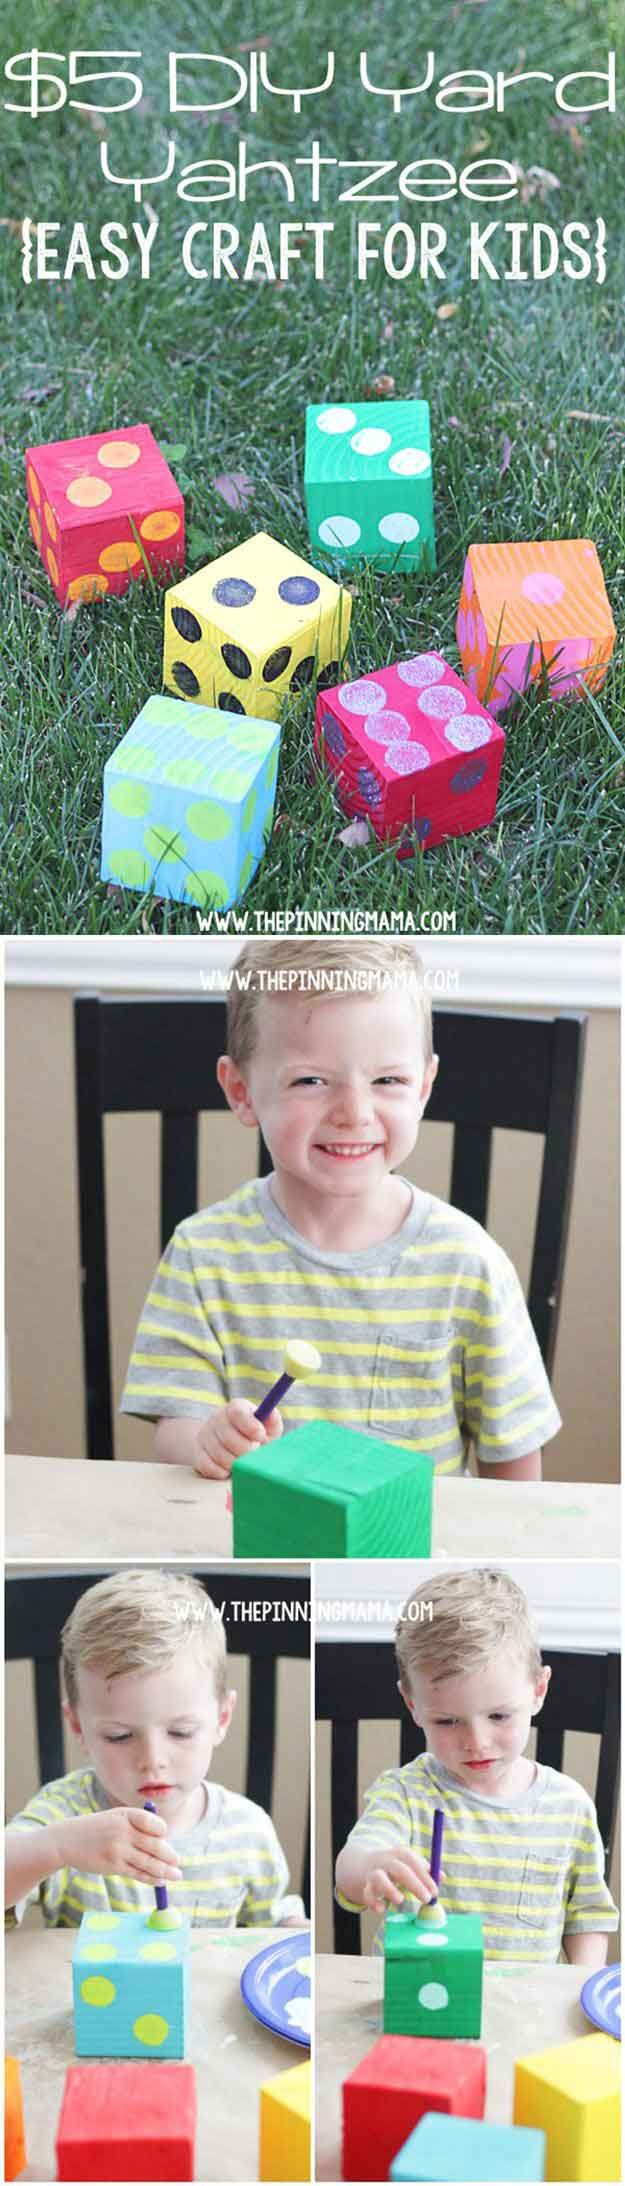 15 DIY Outdoor Family Games   Other Crafts   Outdoor games ...